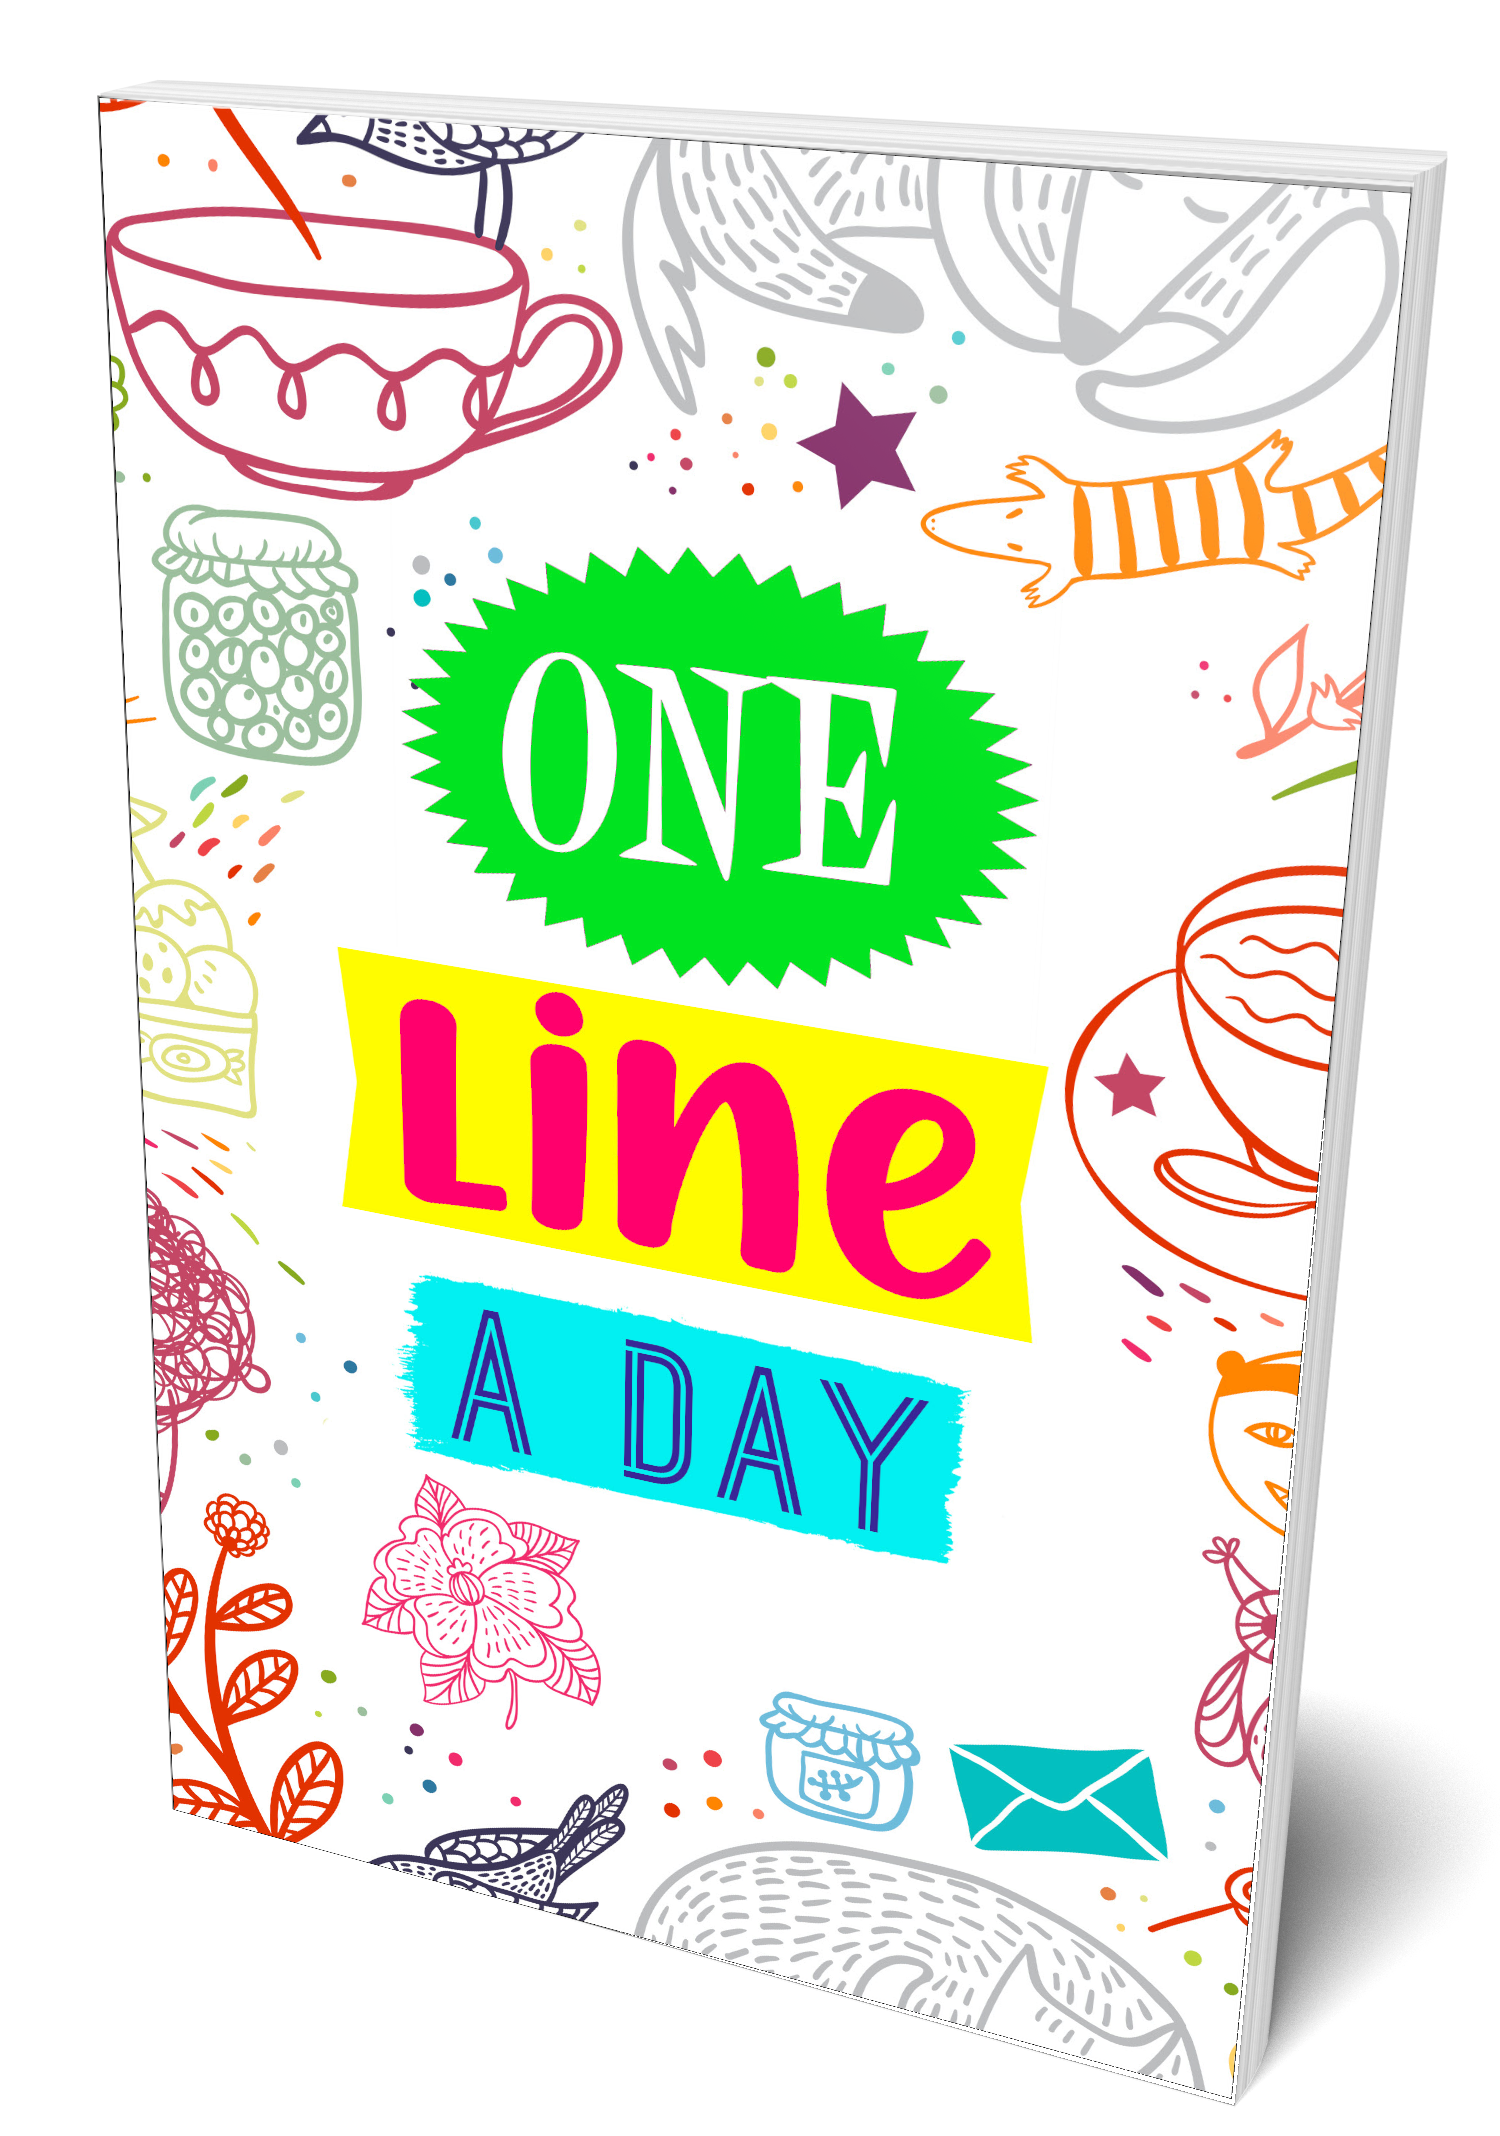 One Line A Day